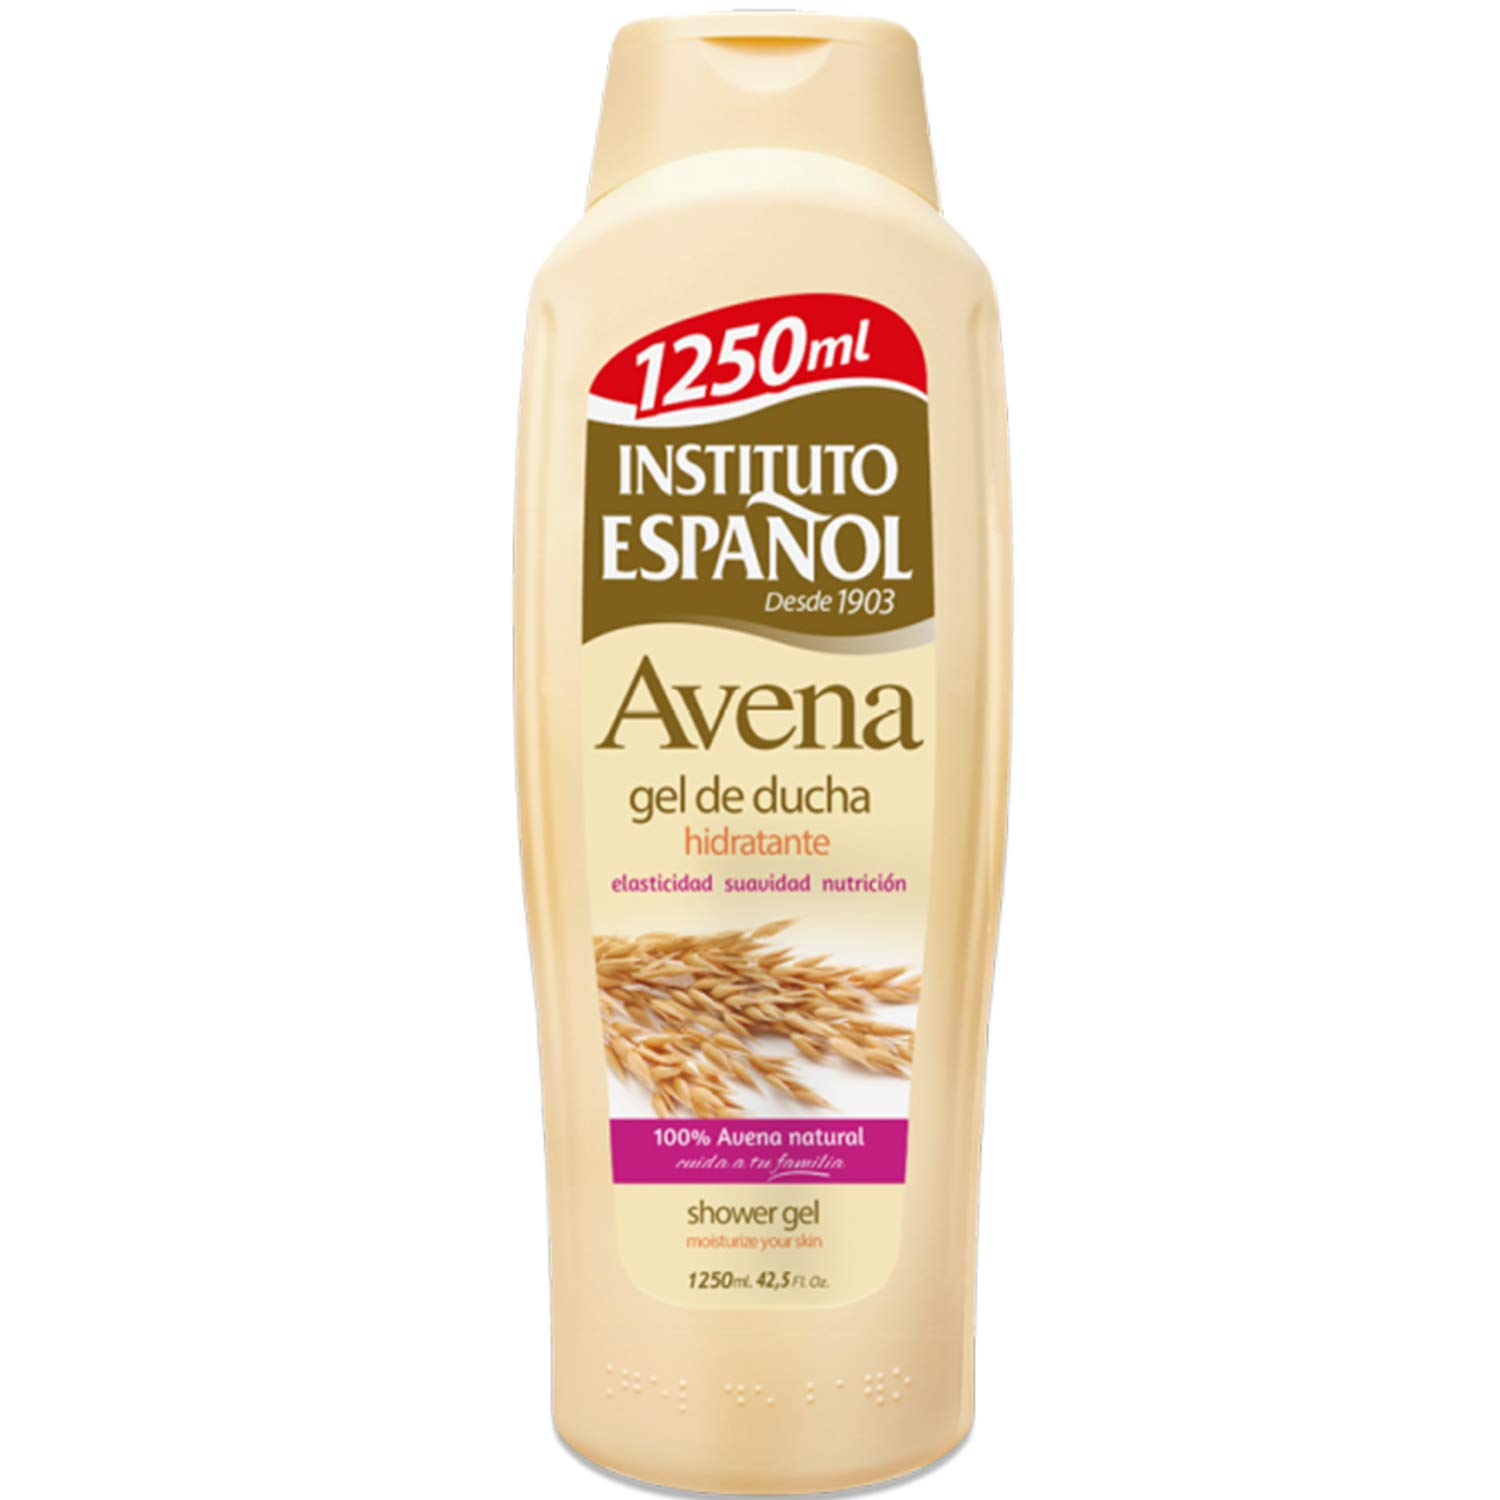 GEL INST ESPAQOL 1250 ML AVENA product image